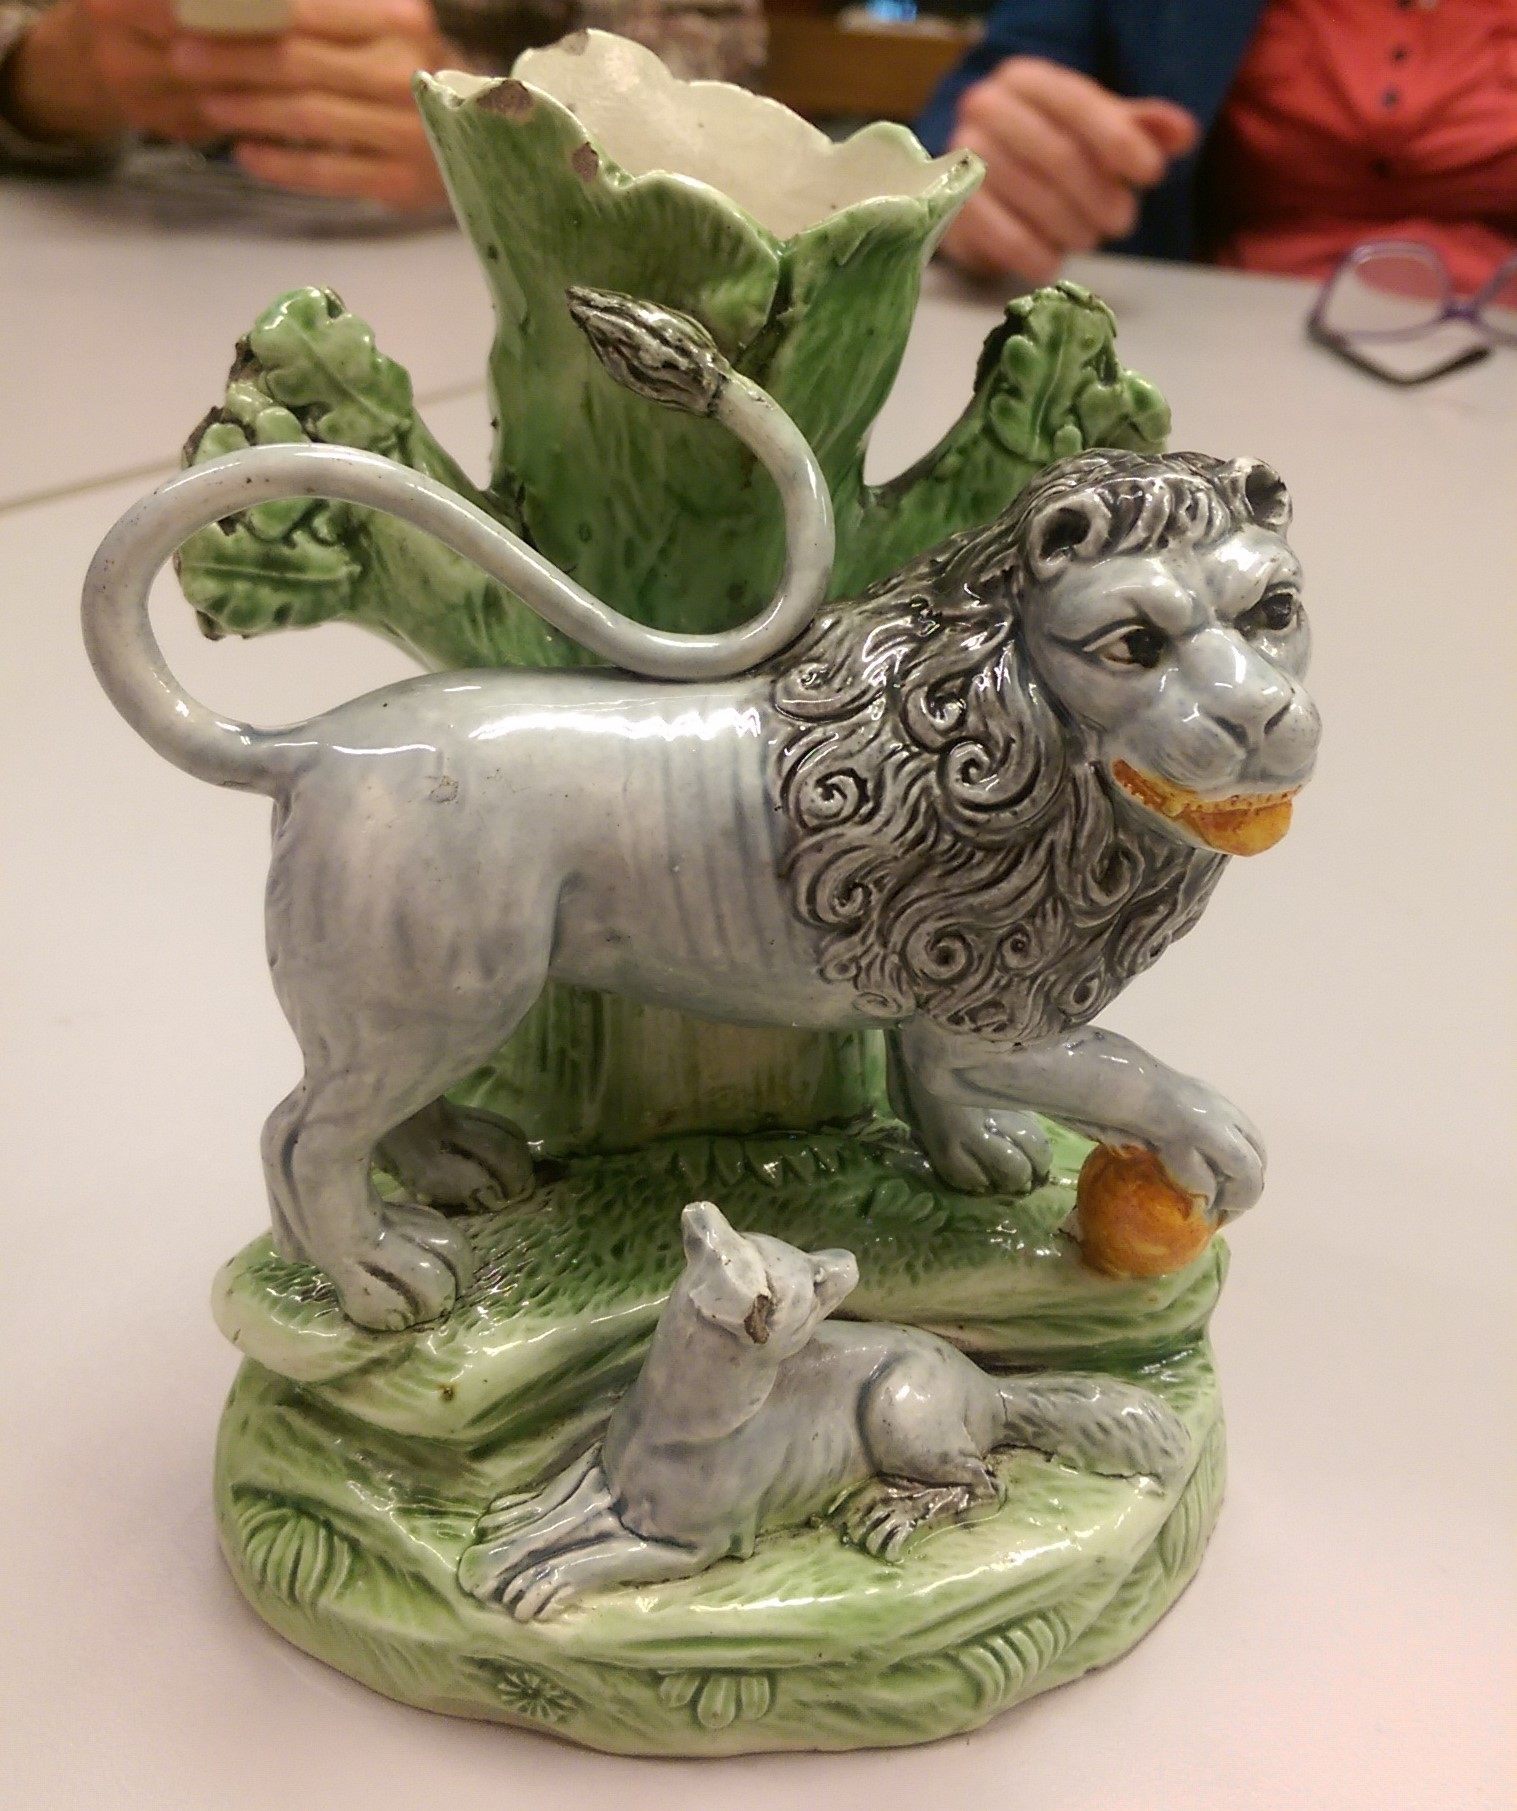 Antique Victorian Staffordshire pottery spaniel or lion